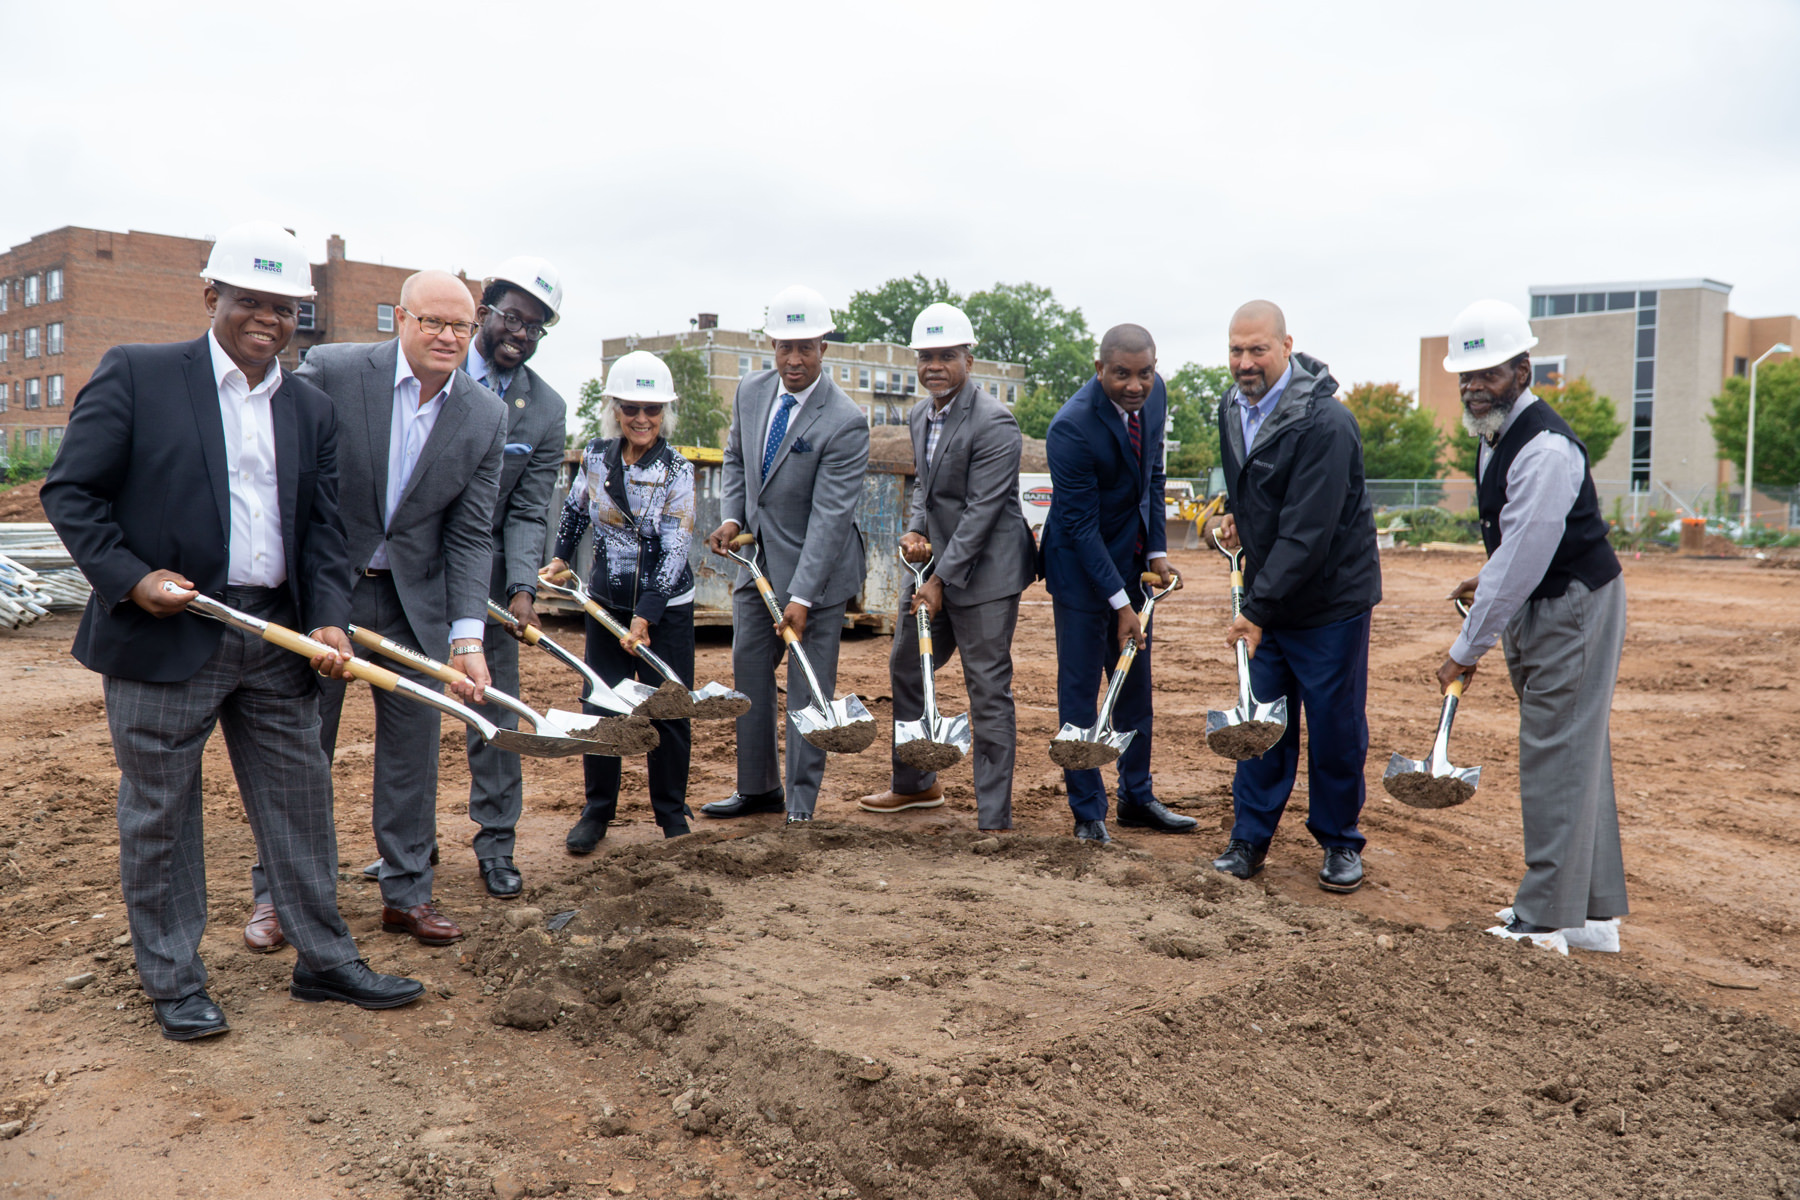 J.G. Petrucci Company brings affordable housing to East Orange, New Jersey